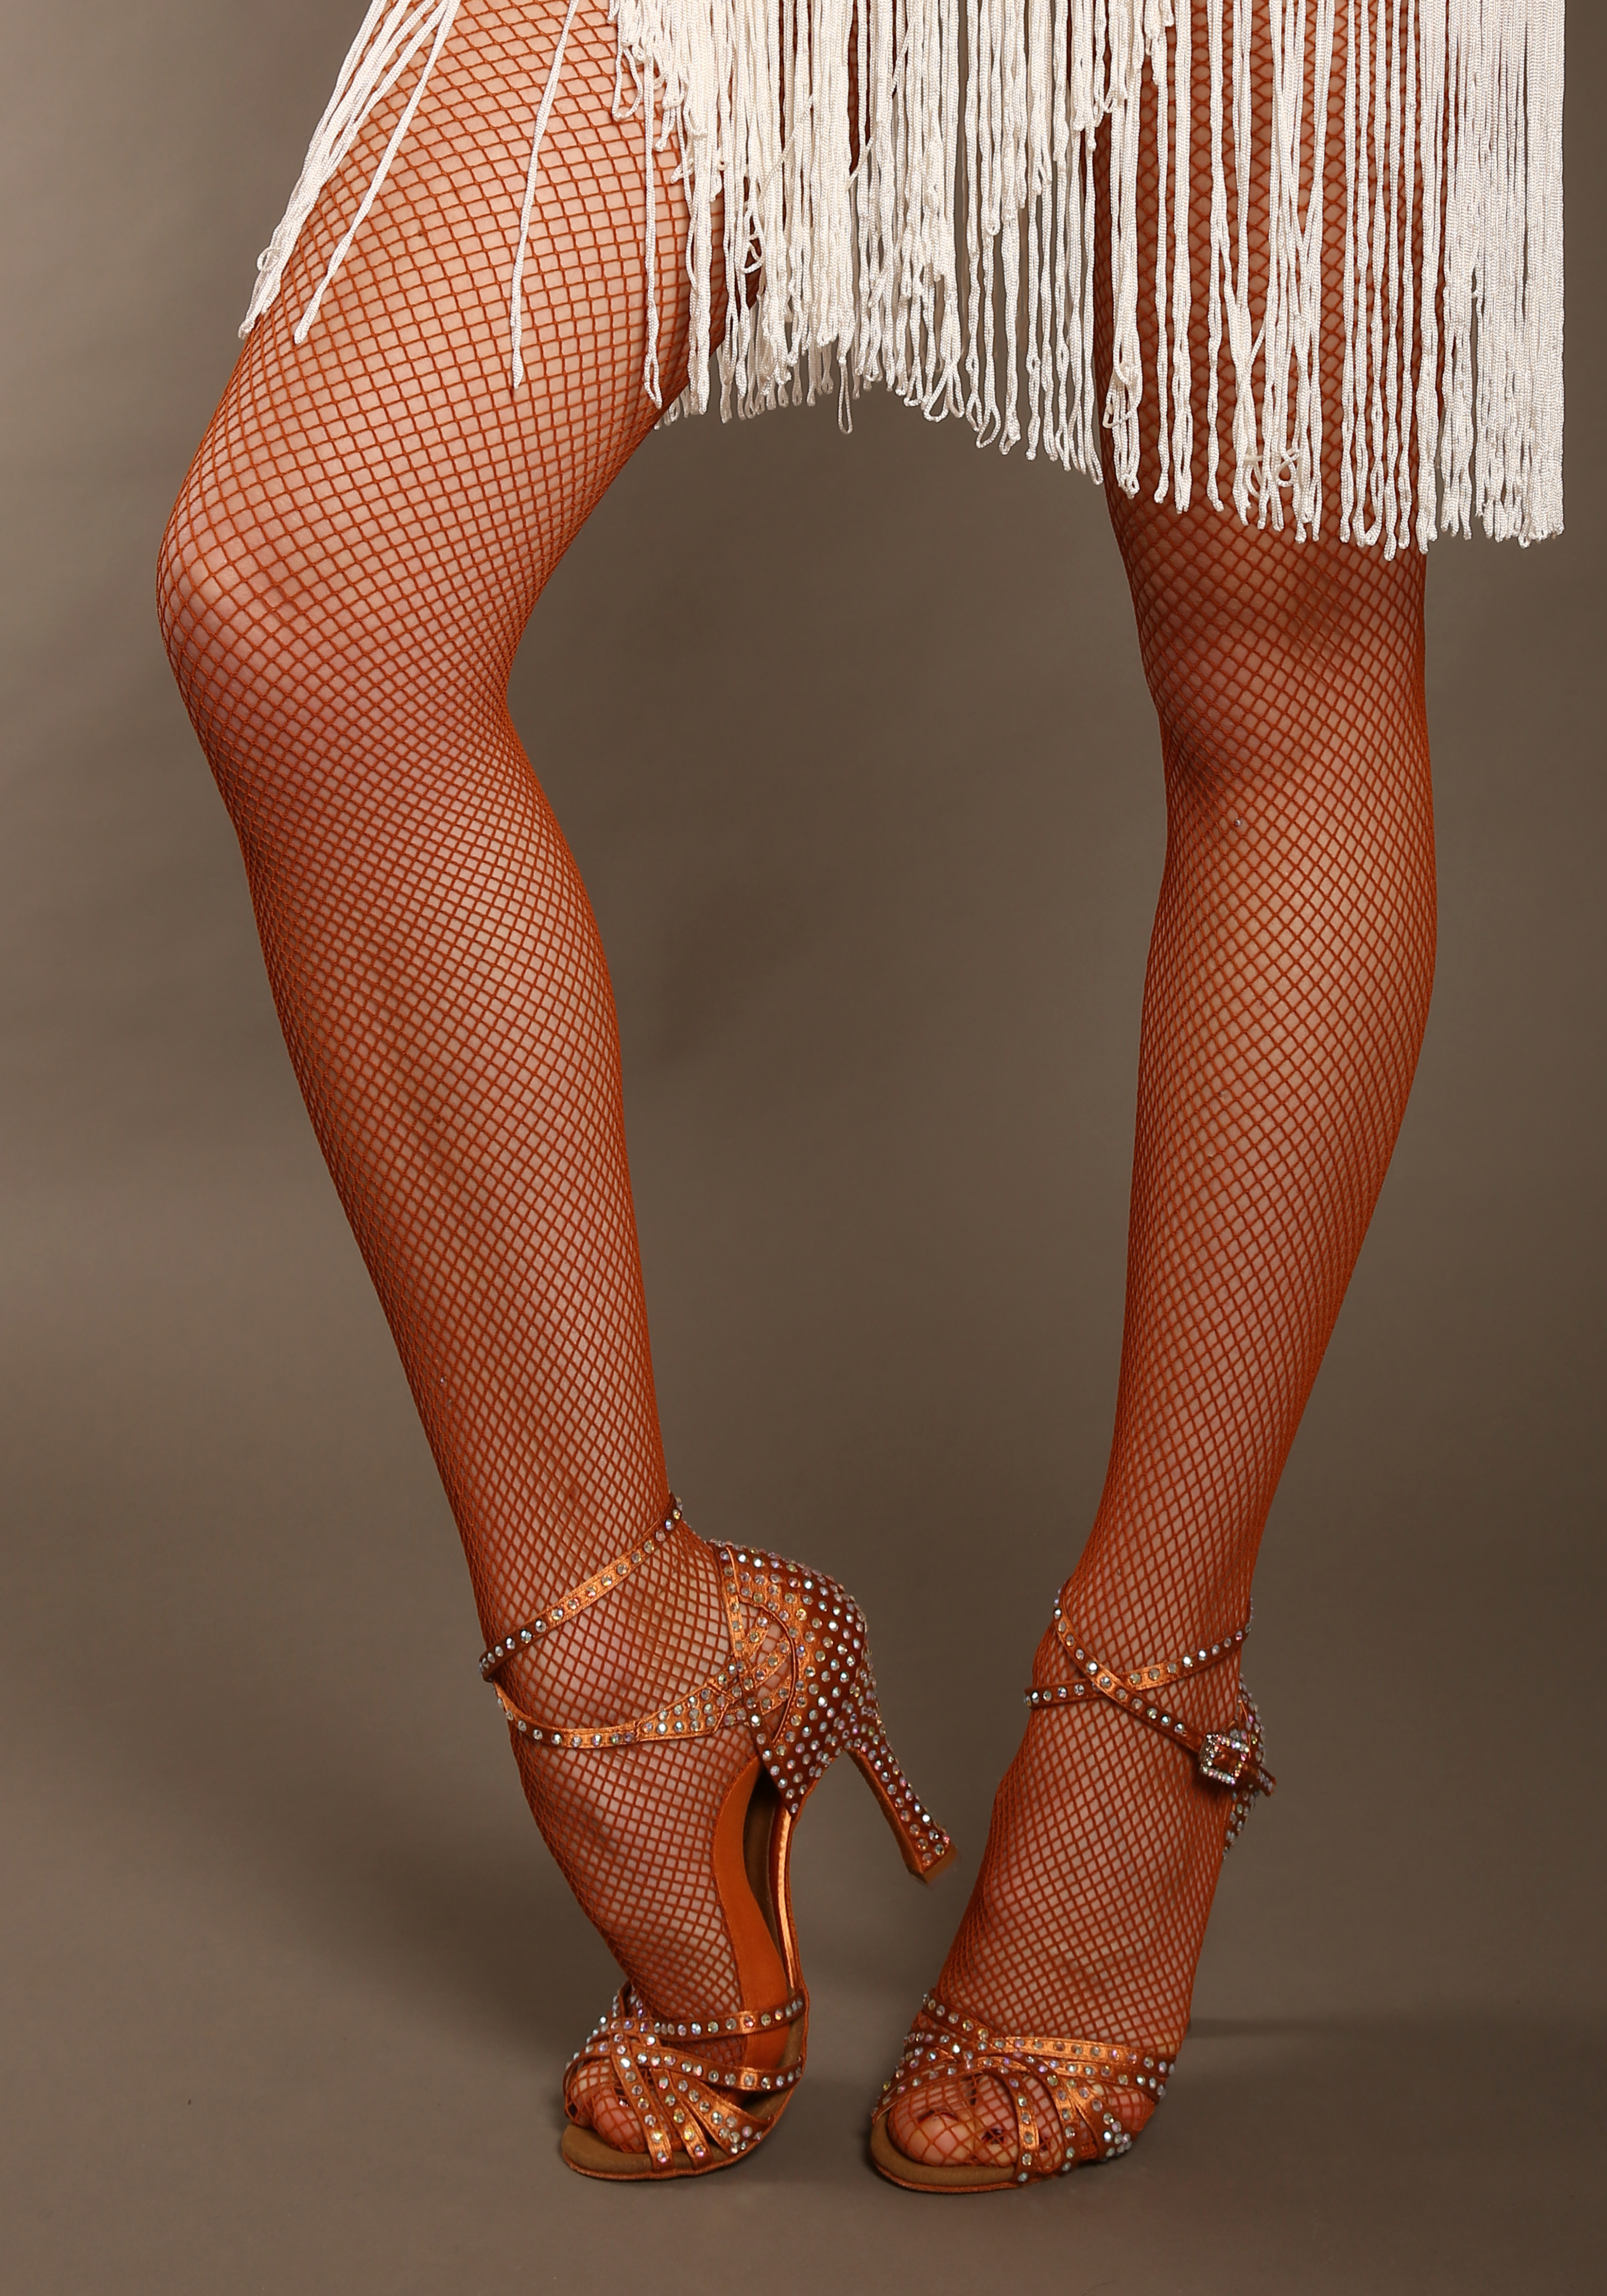 Collant a rete professionali Pridance- Professional Fishnet